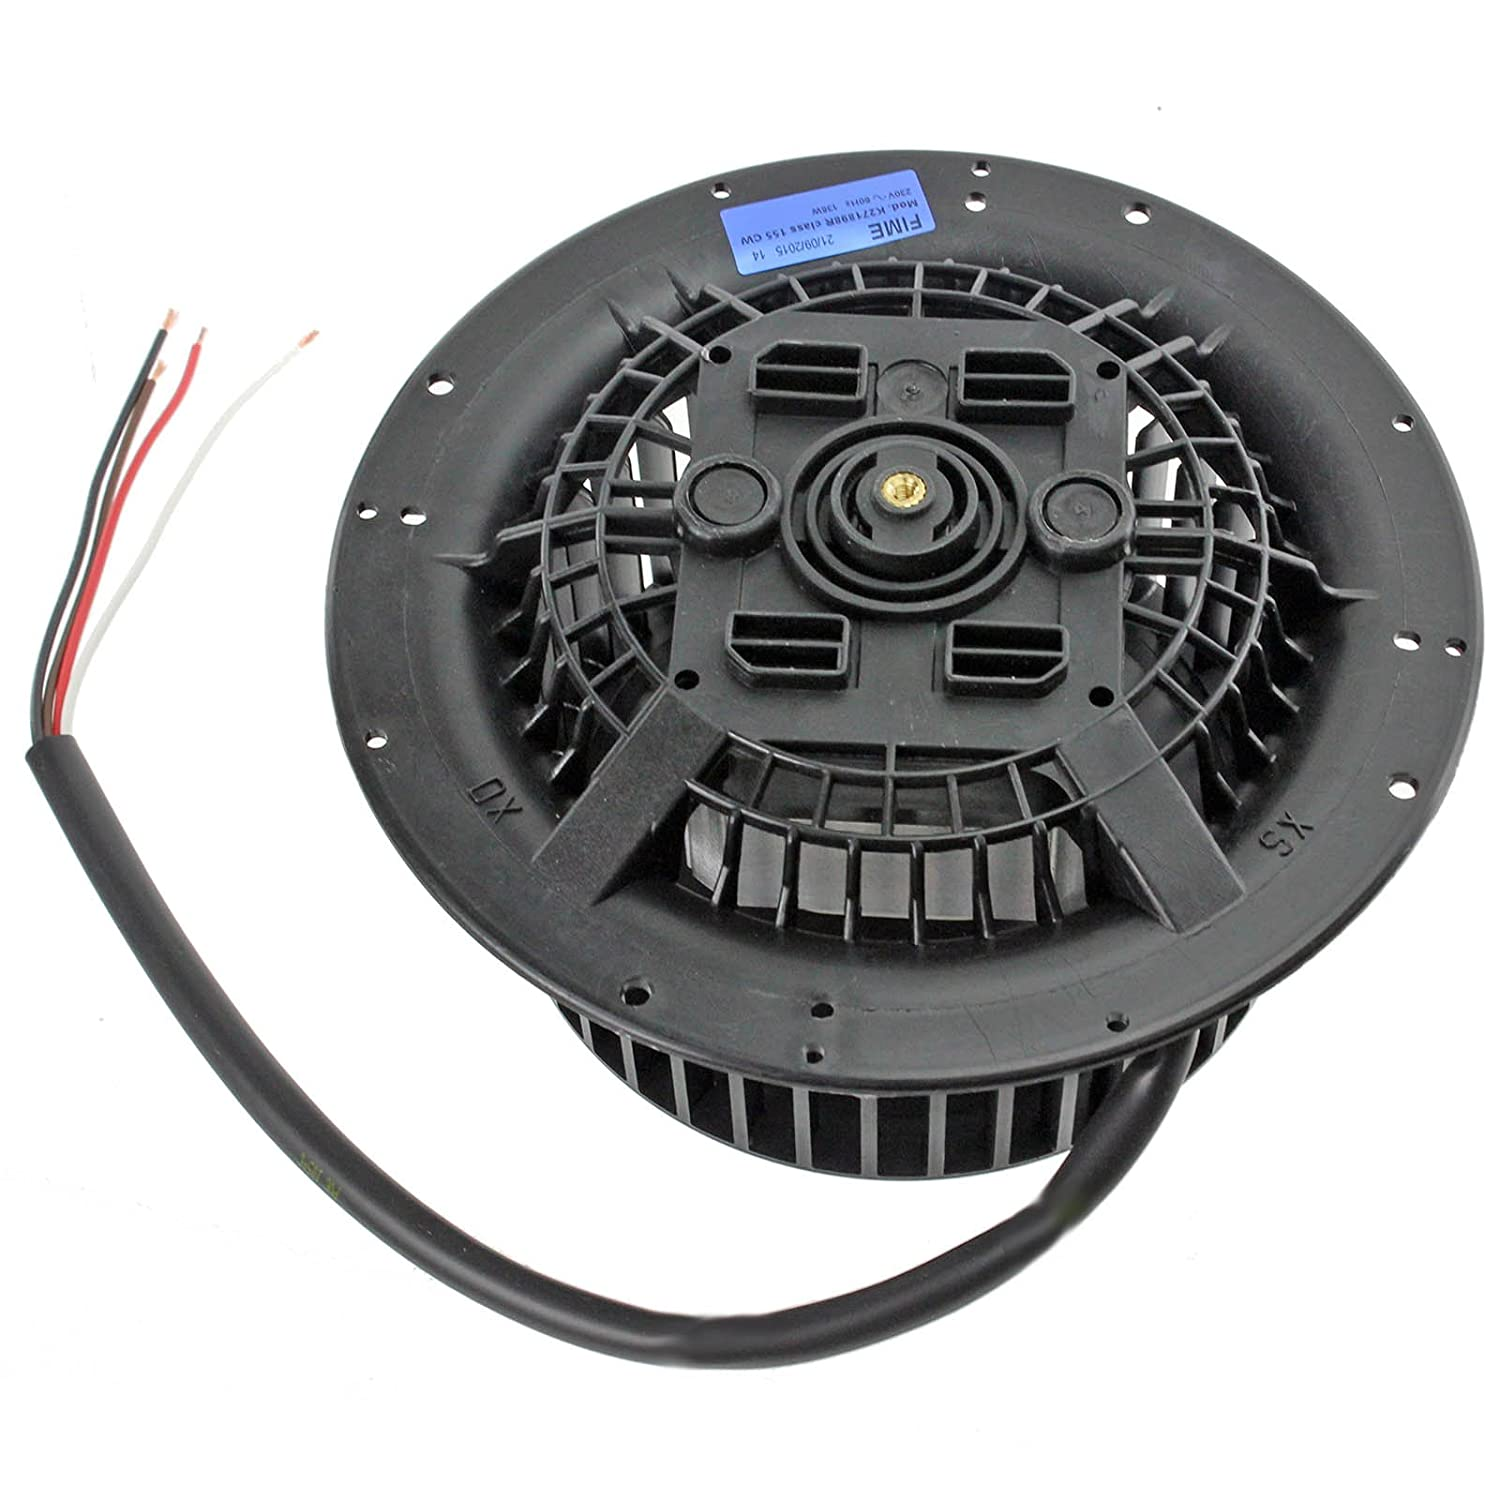 Spares2go Universal 135w Cooker Hood Motor Fan Unit Clockwise Range Wiring Right Hand Directional Kitchen Home